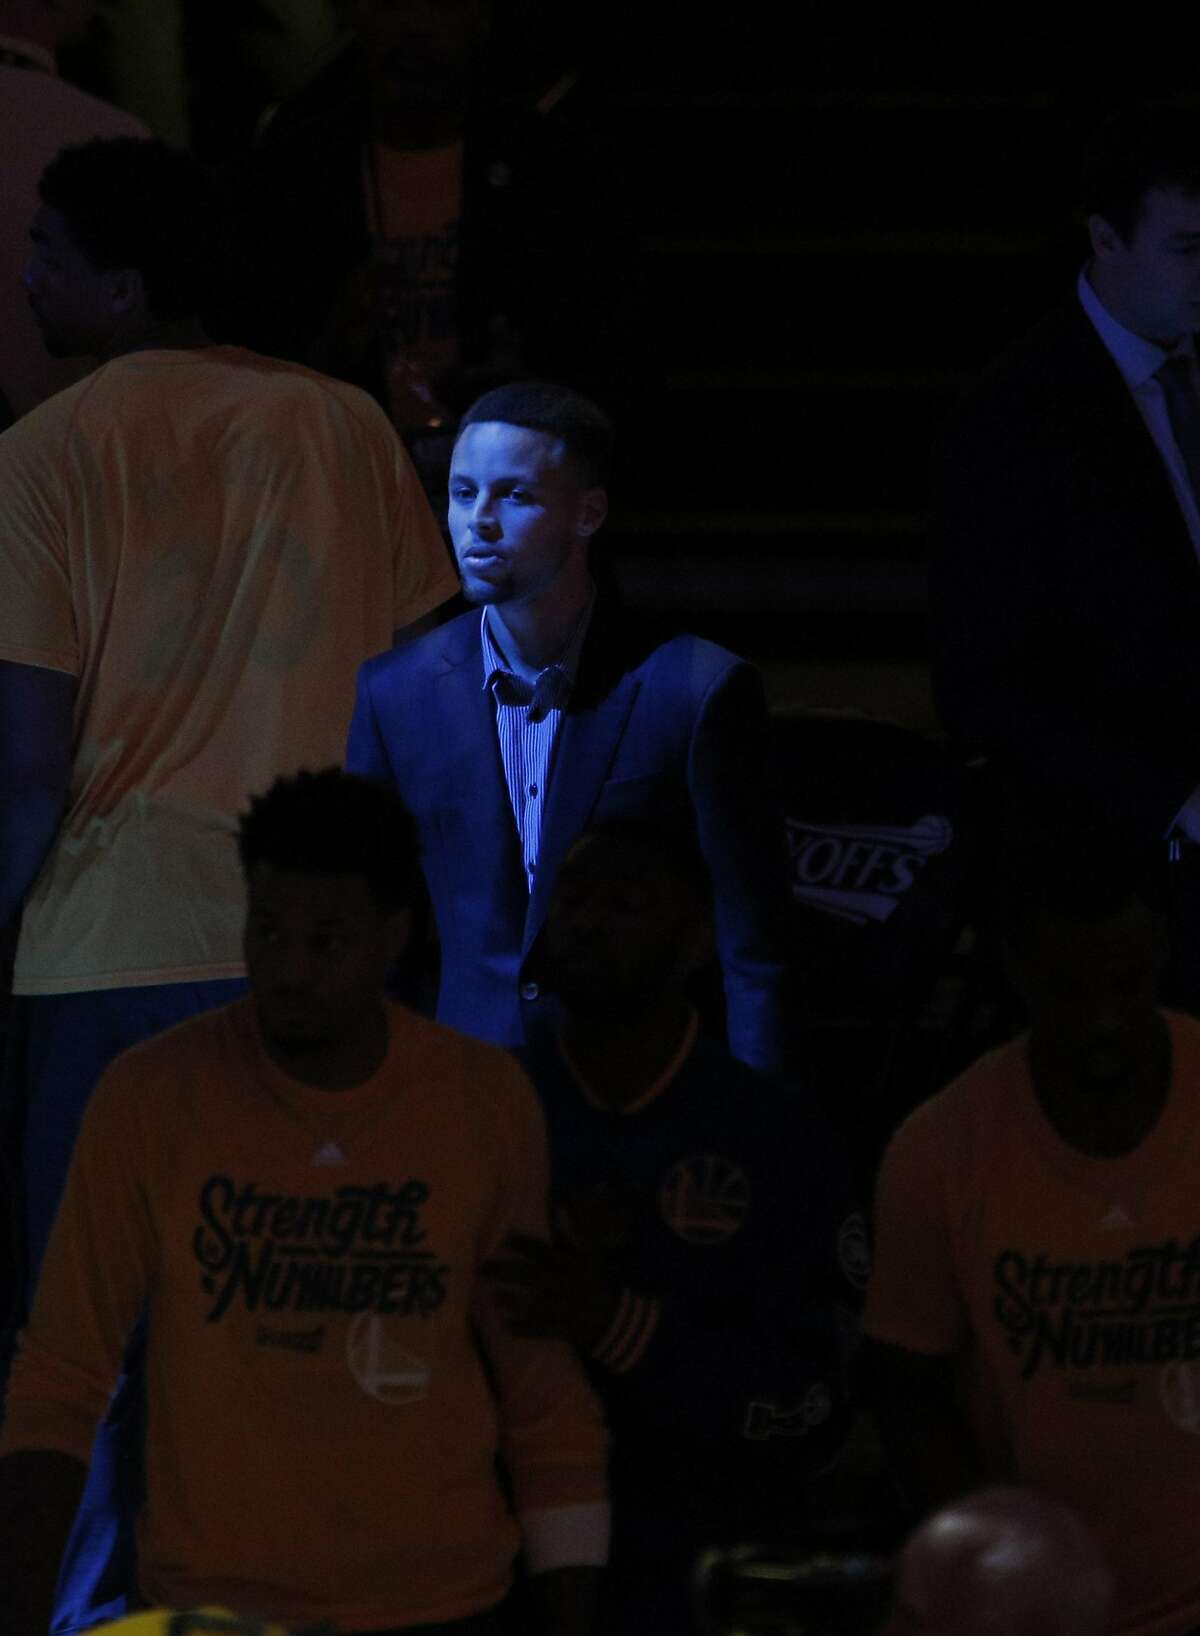 Stephen Curry (30) with the team but in his street clothes during introductions before the first half as the Golden State Warriors played the Houston Rockets in game 2 of the first round of the Western Conference Playoffs at Oracle Arena in Oakland, Calif., on Monday, April 18, 2016.